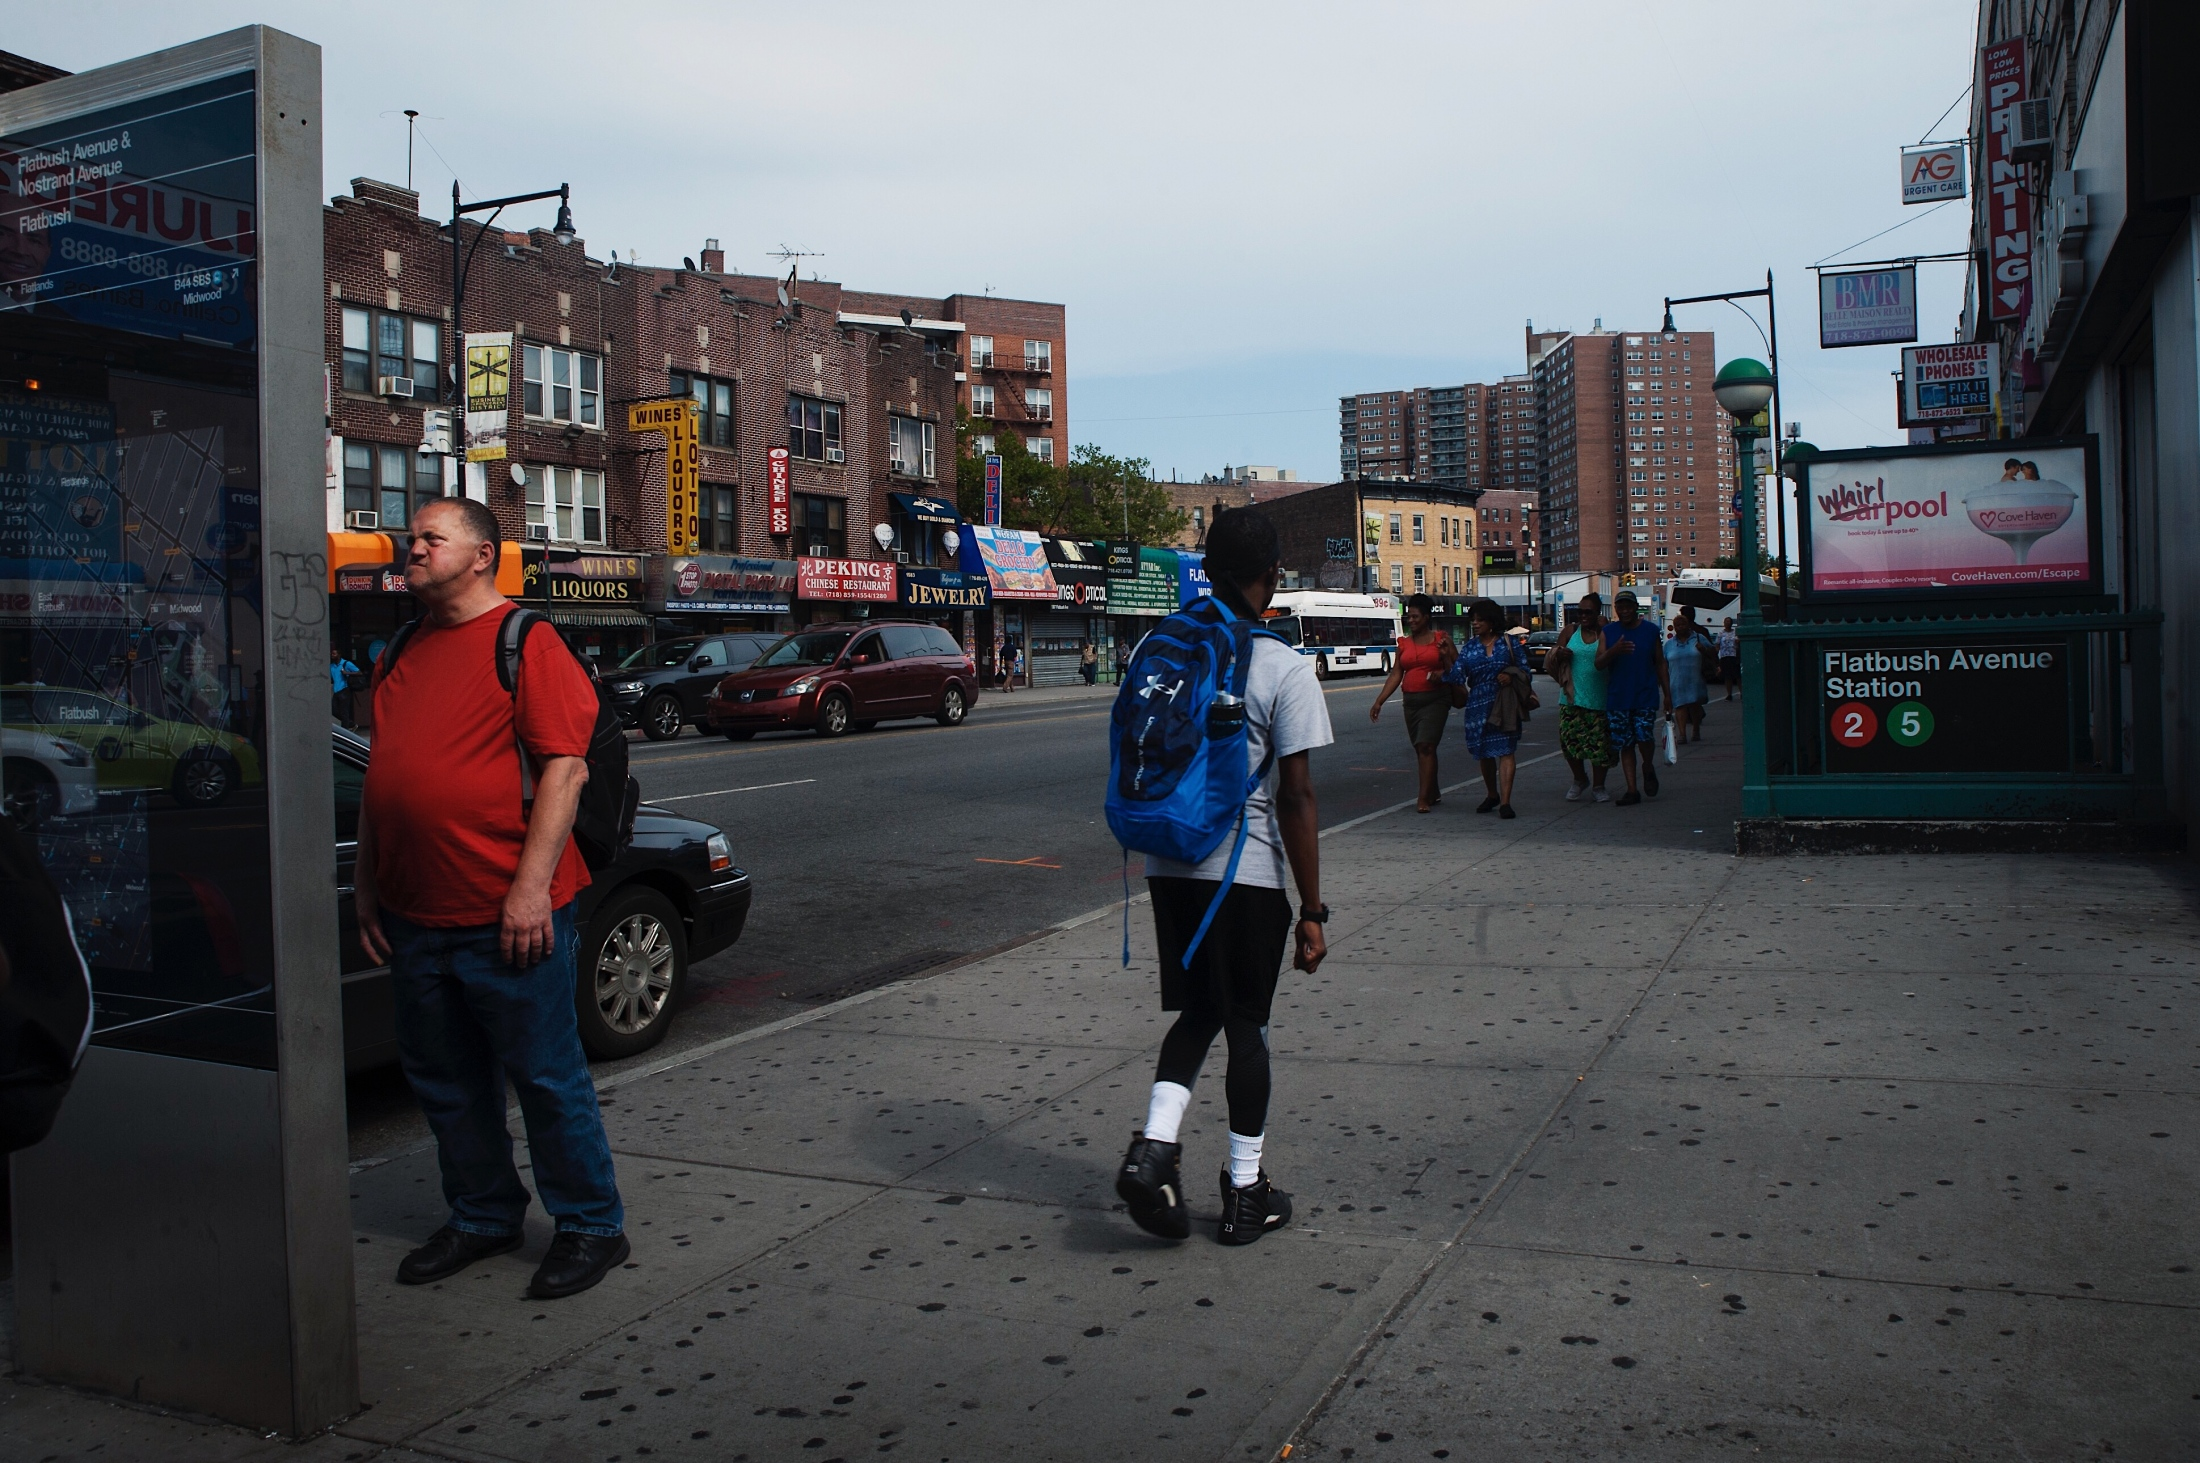 A passerby looks at a map at the intersection of Newkirk & Nostrant in Flatbush, New York.